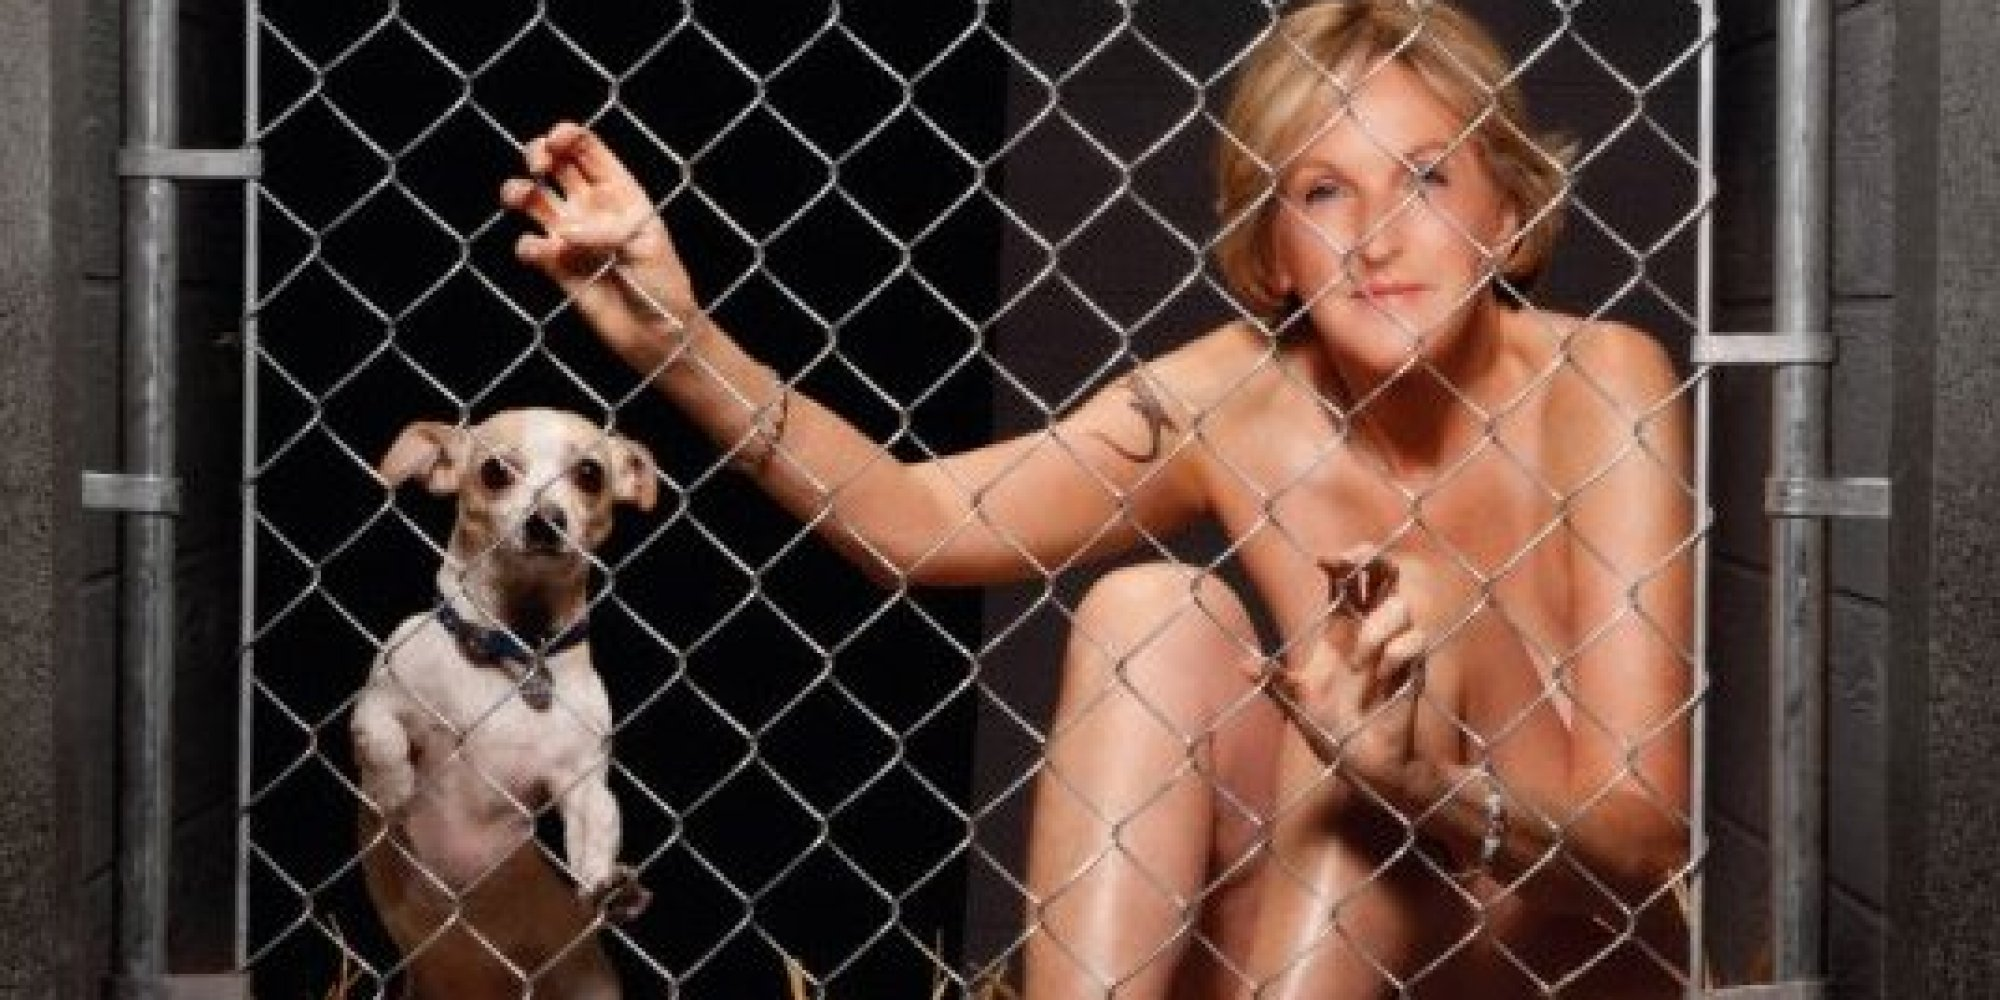 Ingrid Newkirk poses nude with small dog.